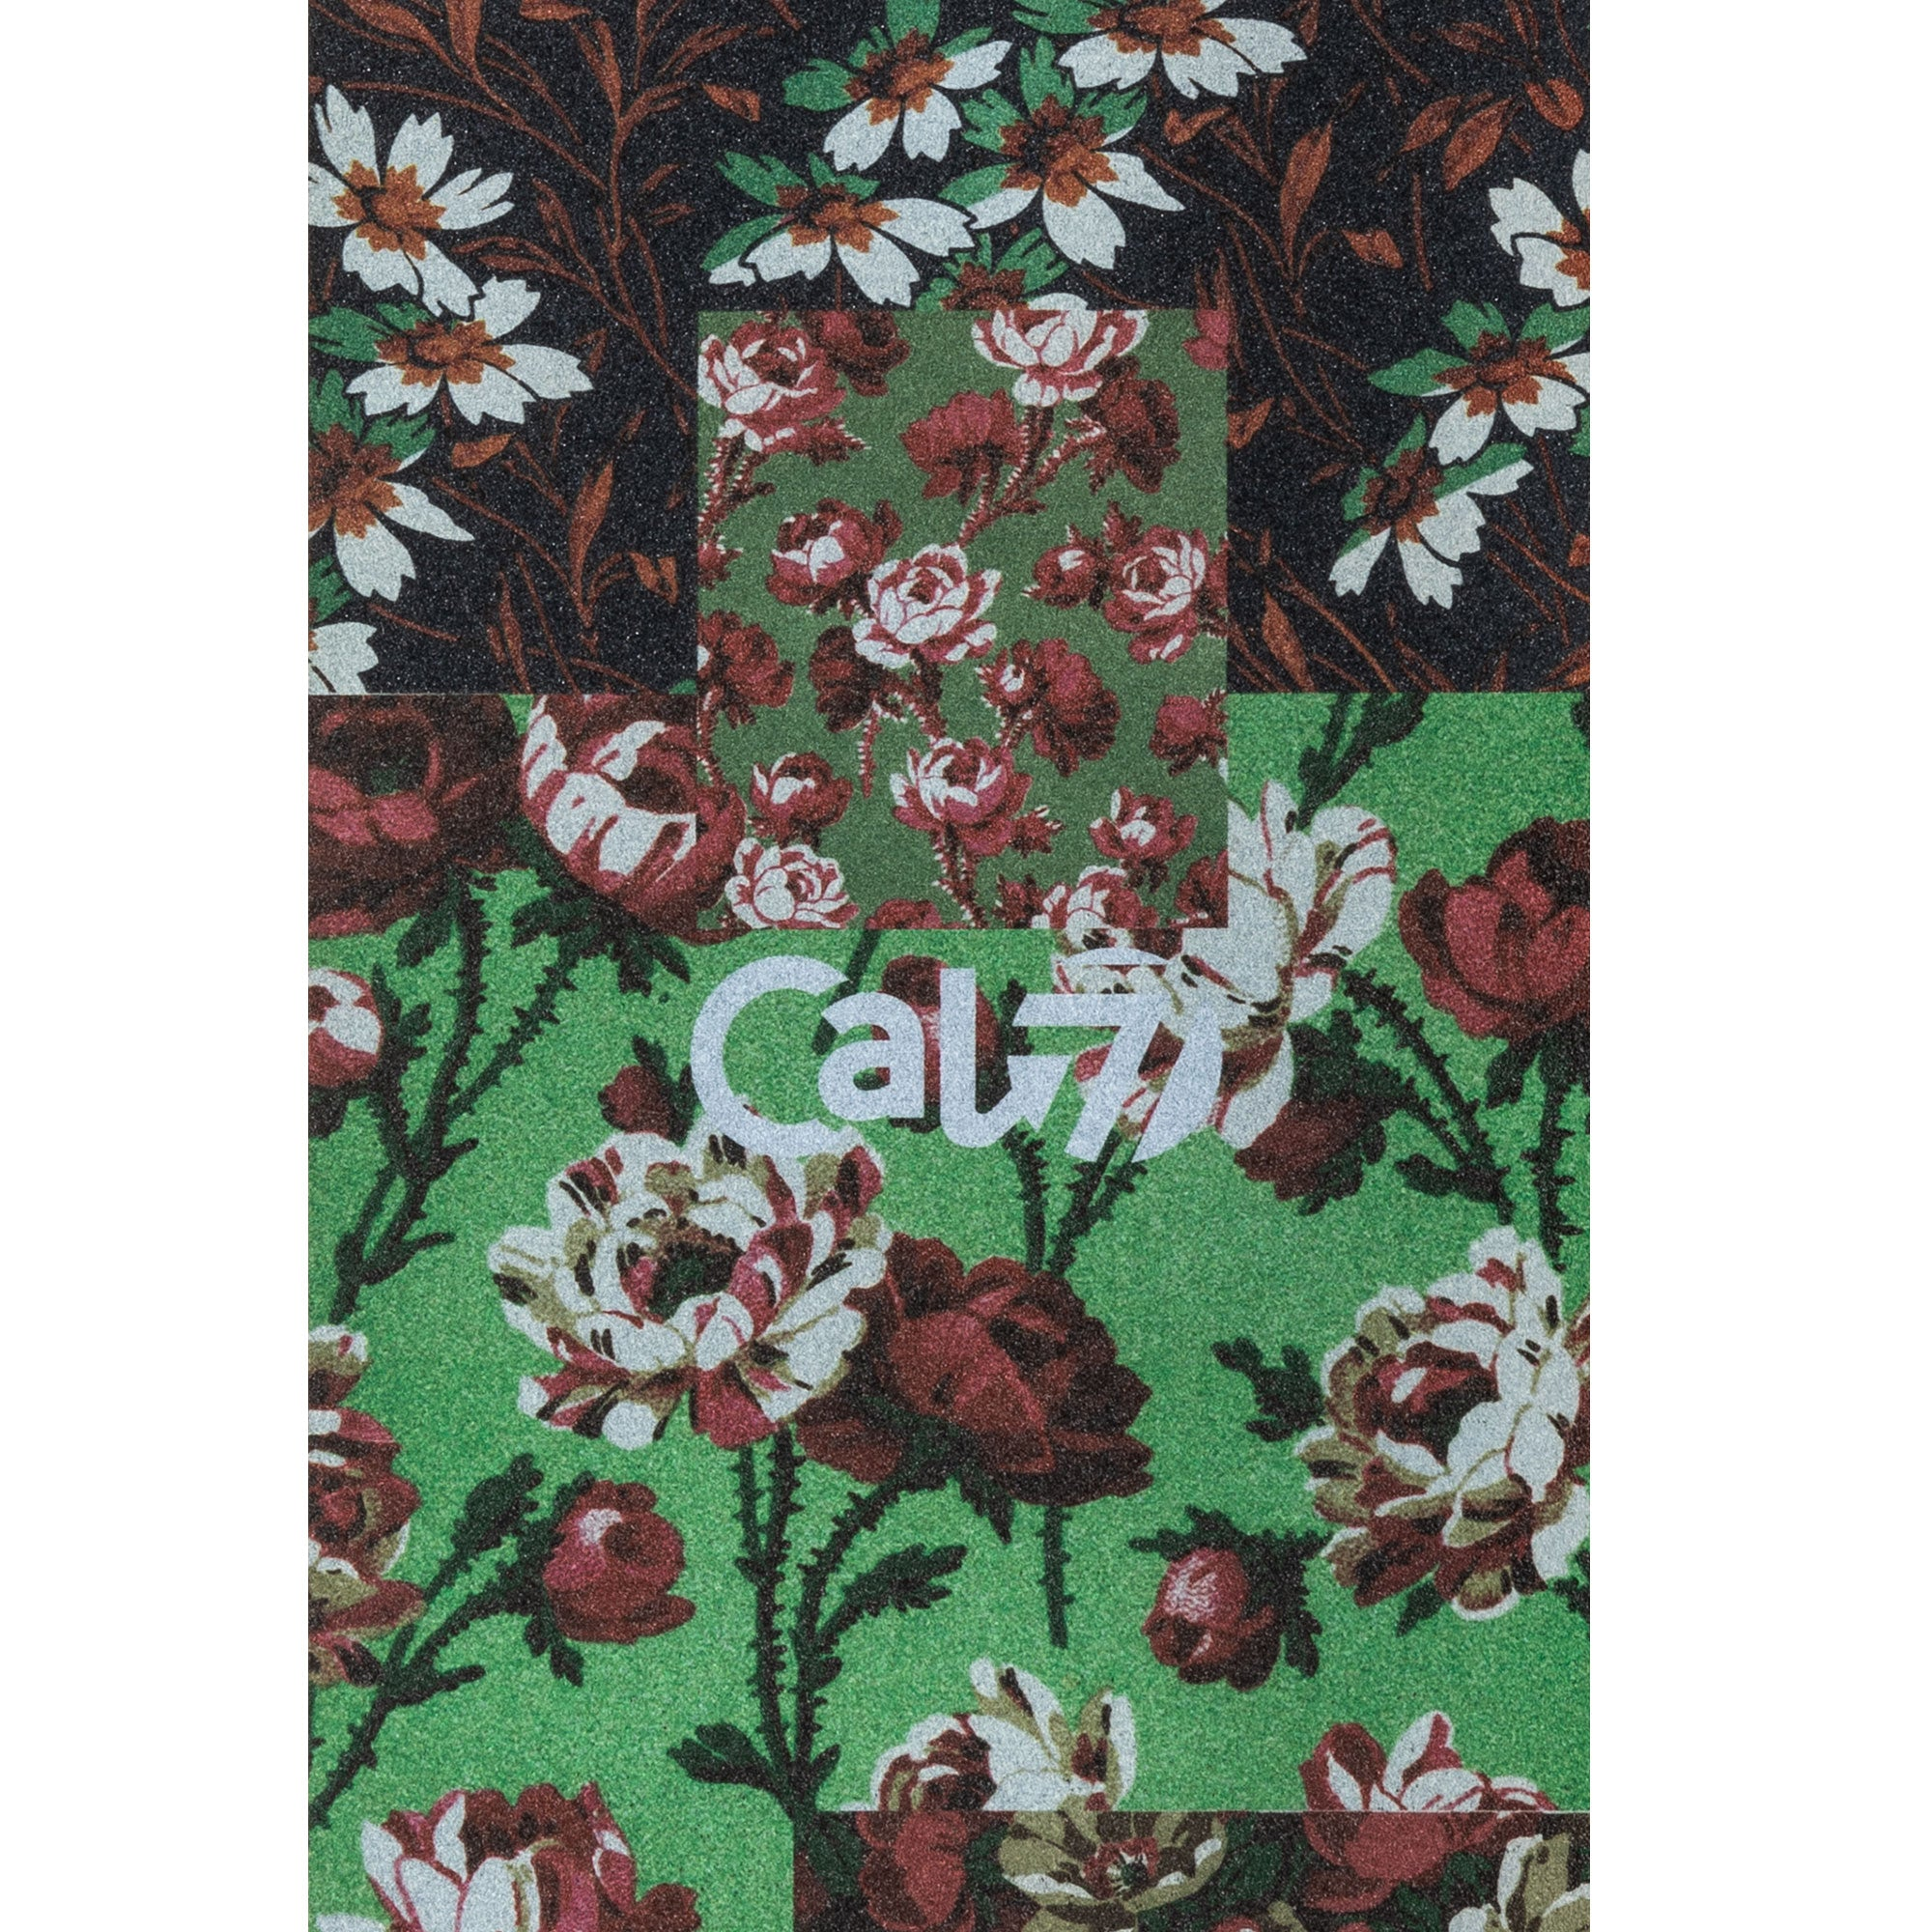 Cal 7 black skateboard griptape with flower design